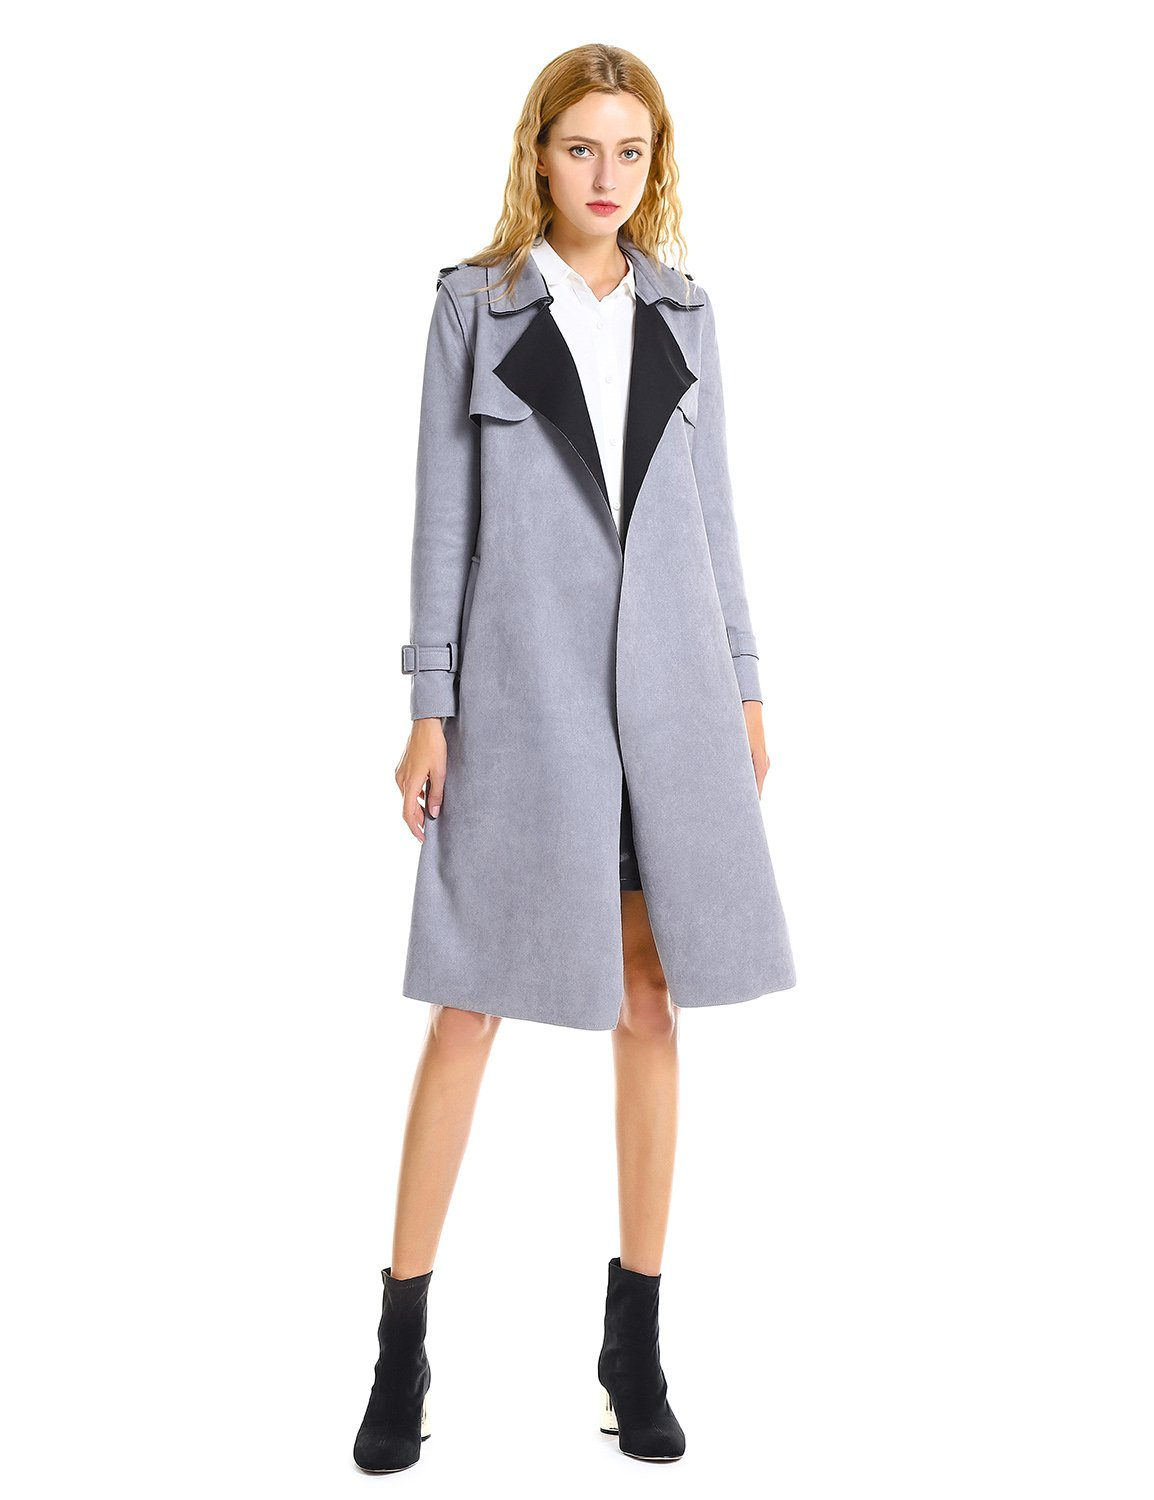 ZAN.STYLE Women Suede Coats Long Duster Jacket Trench Coat with Belt (XL, Grey)